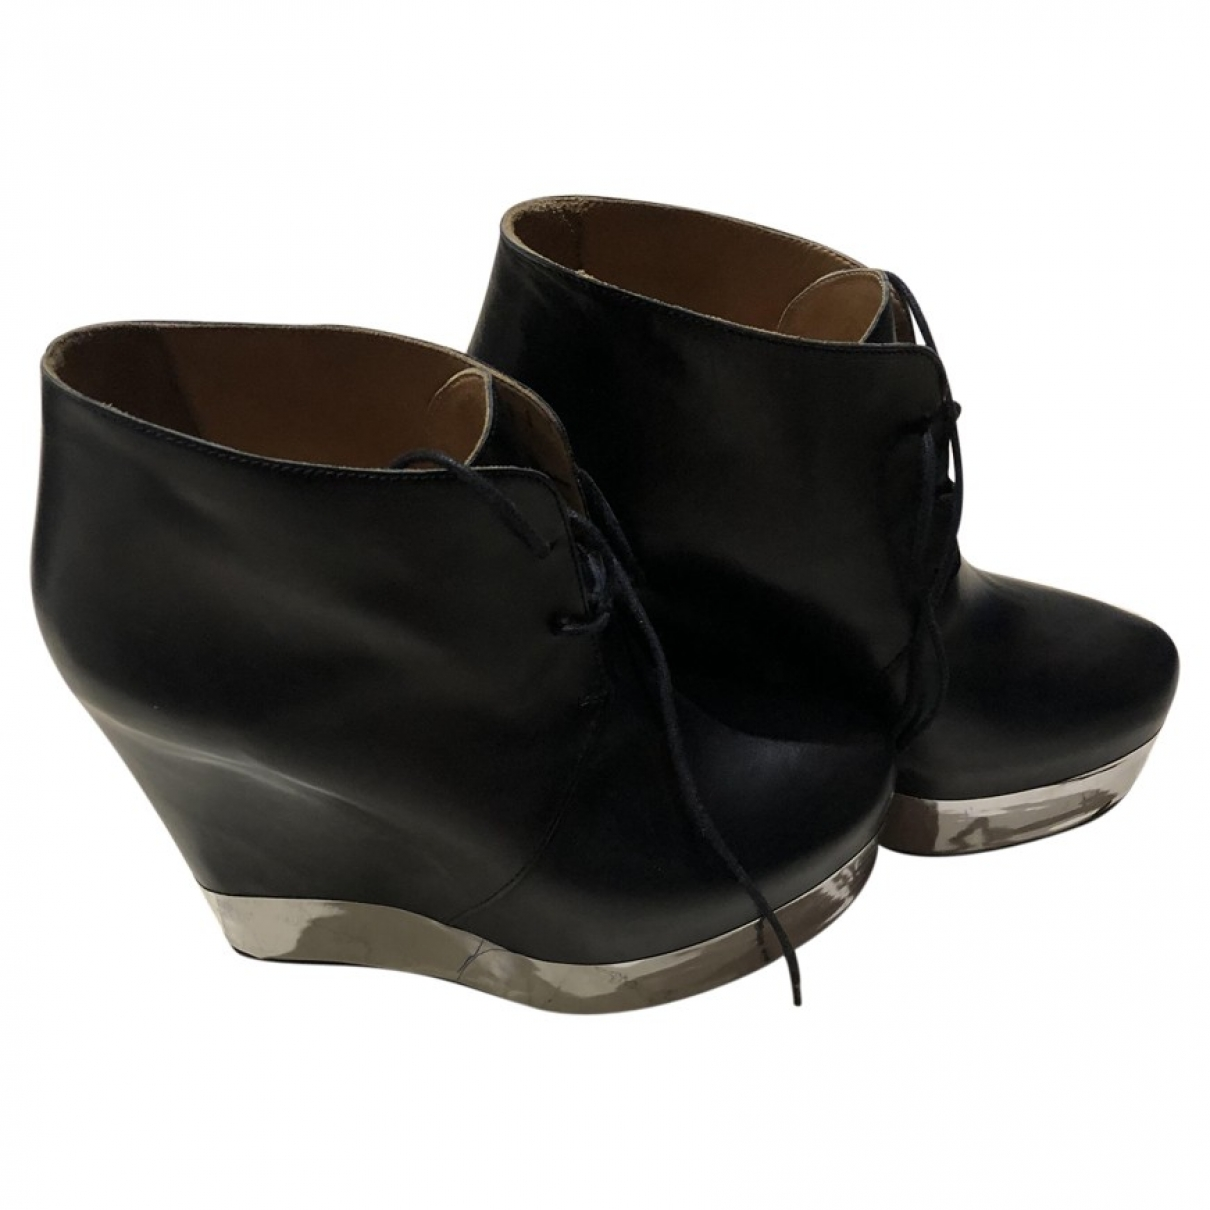 Acne Studios \N Black Leather Ankle boots for Women 40 EU